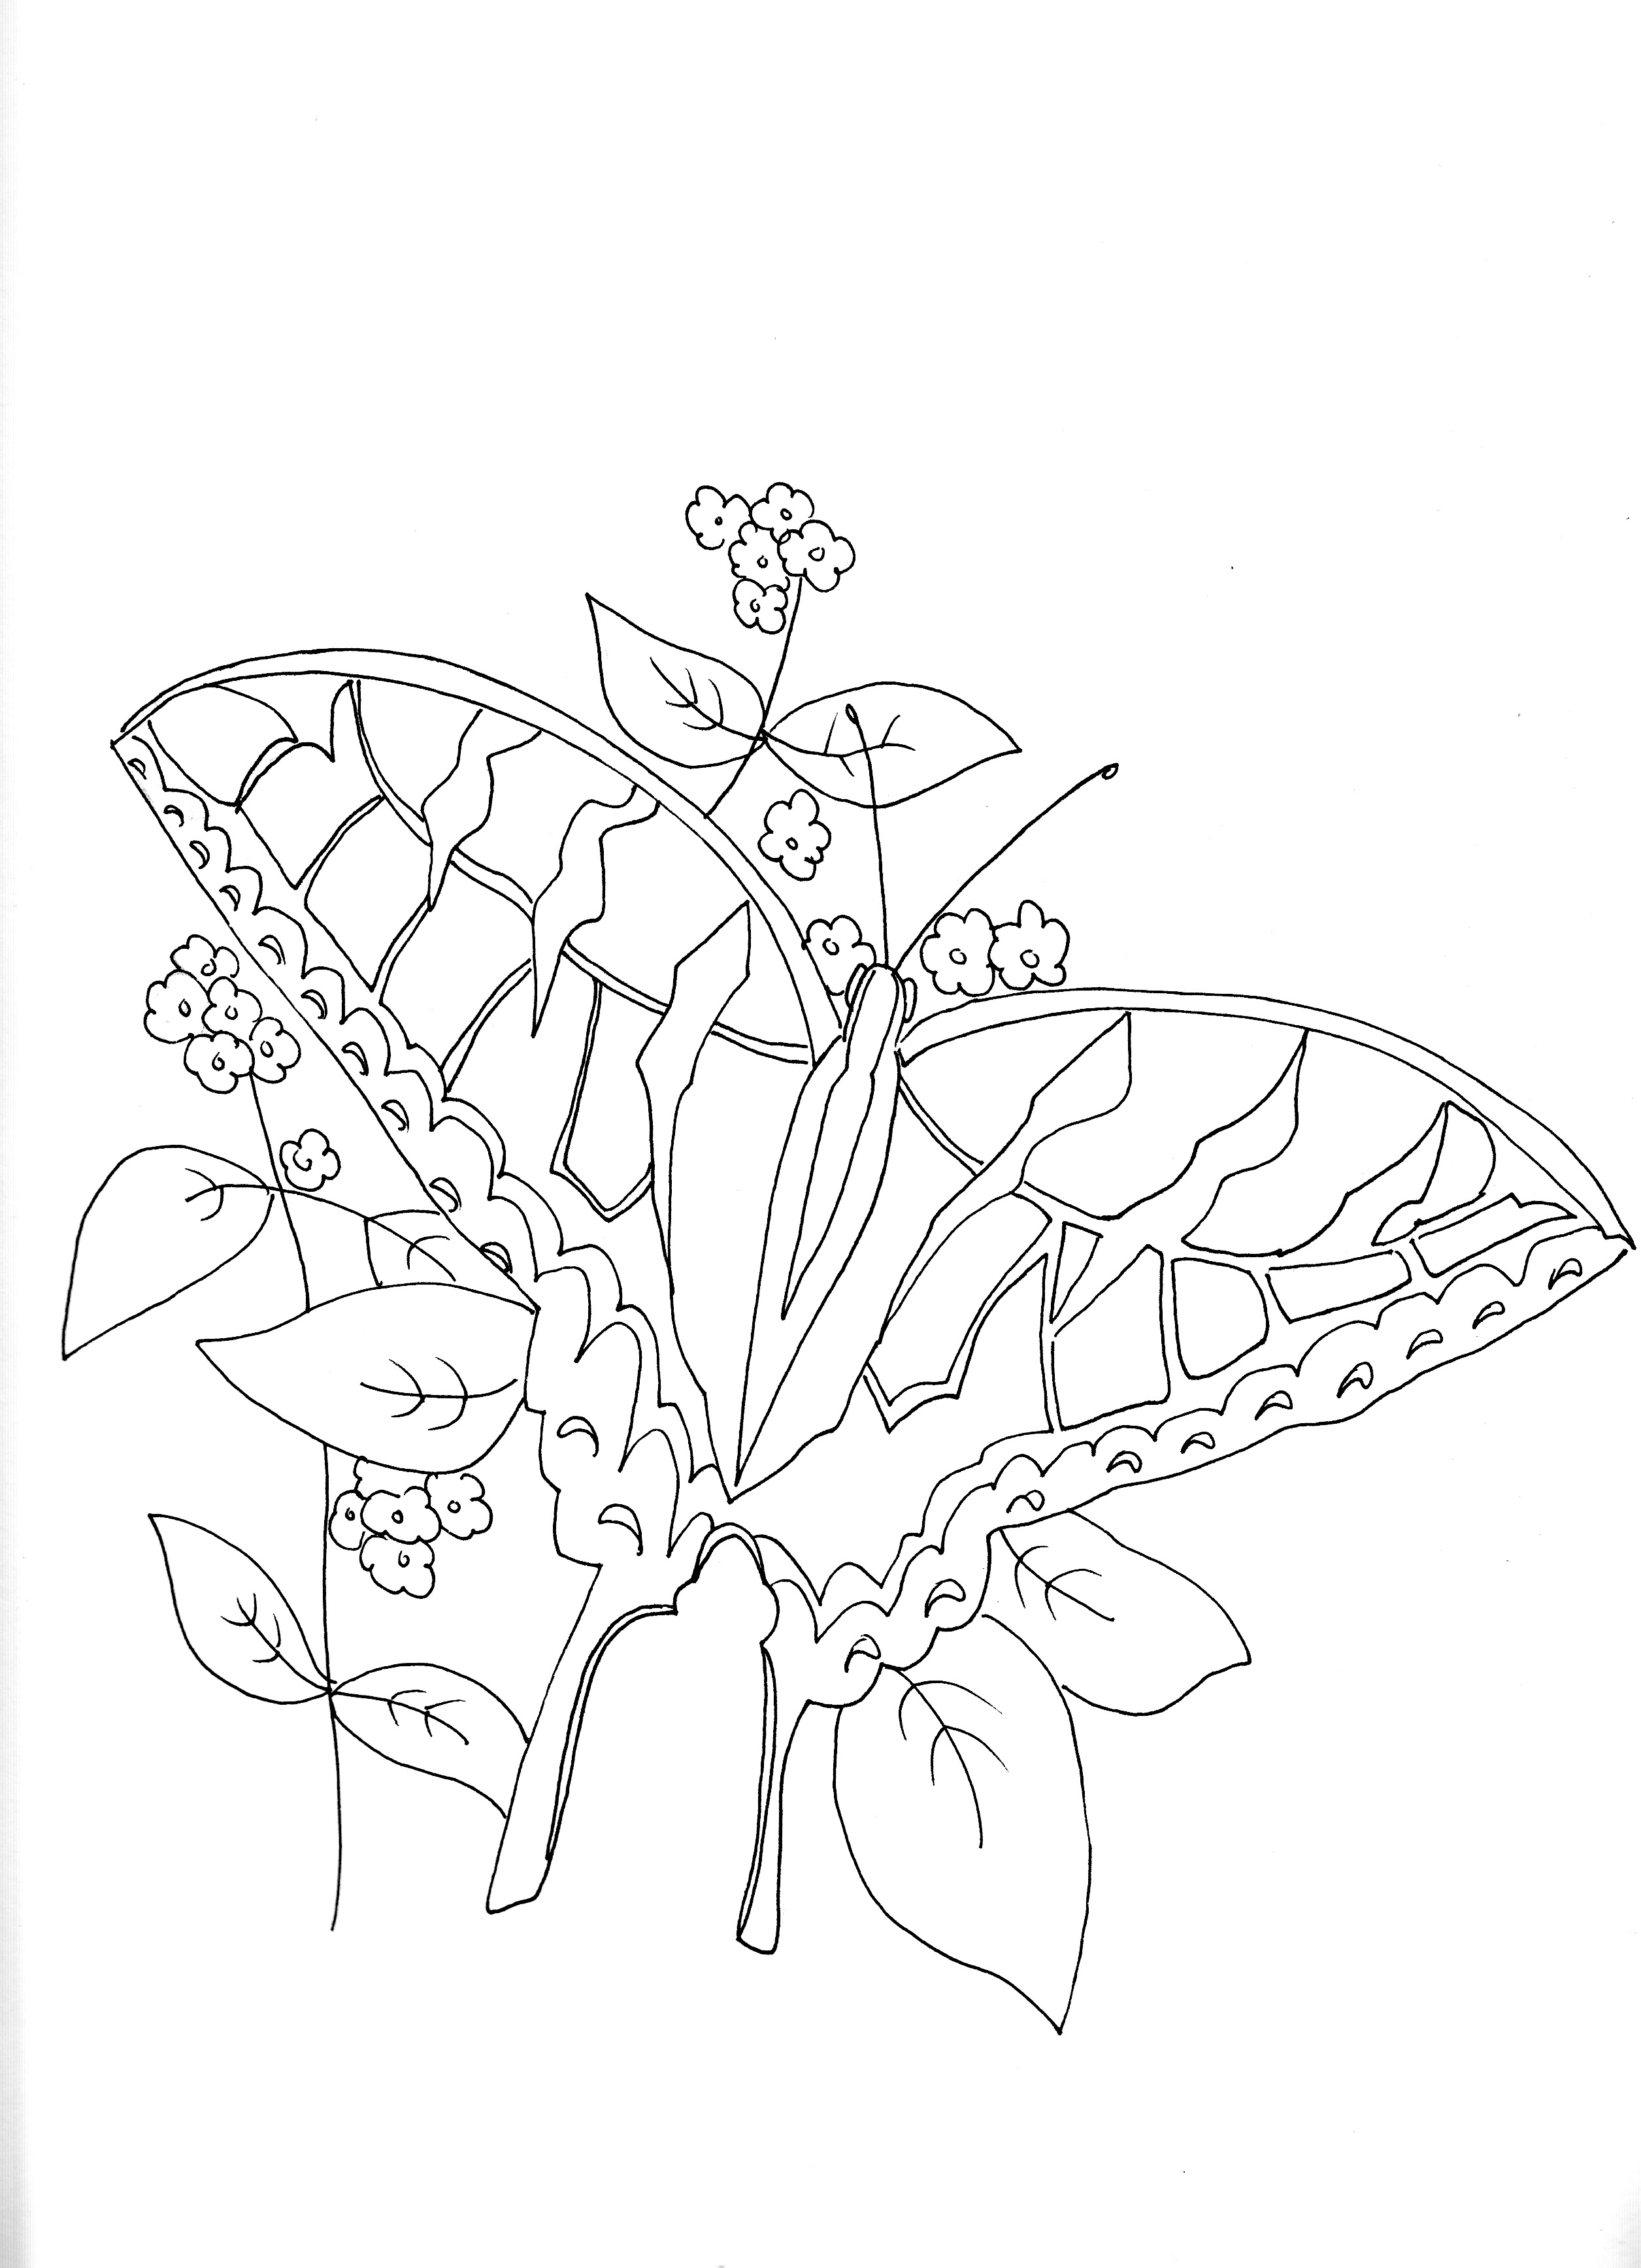 insect coloring pages camo - photo#6